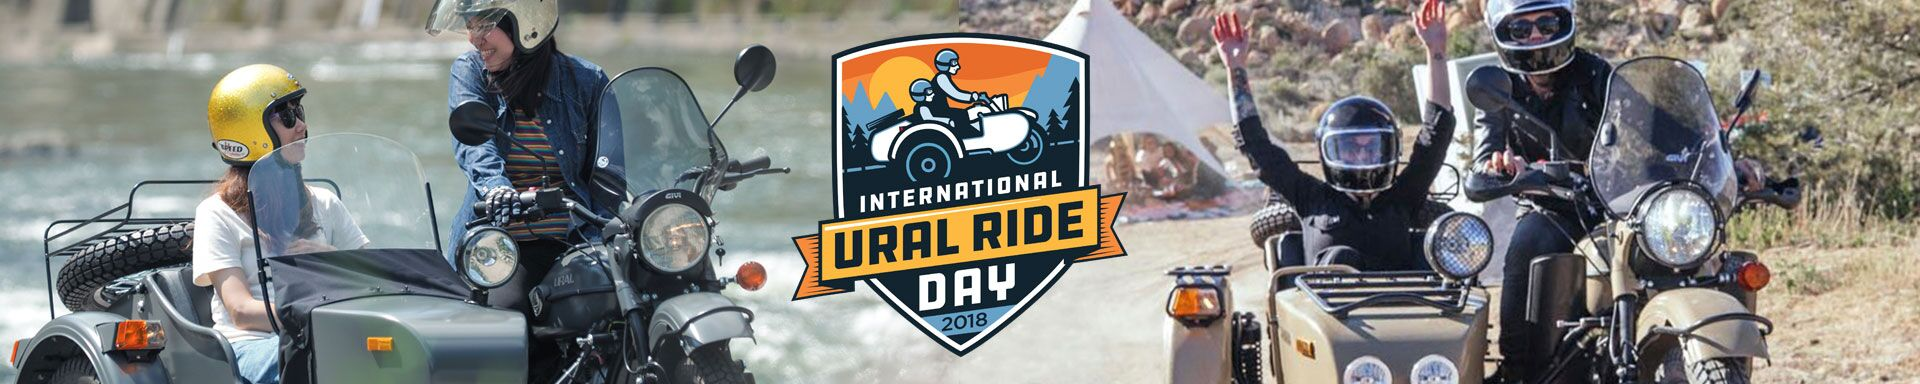 International Ural Ride Day